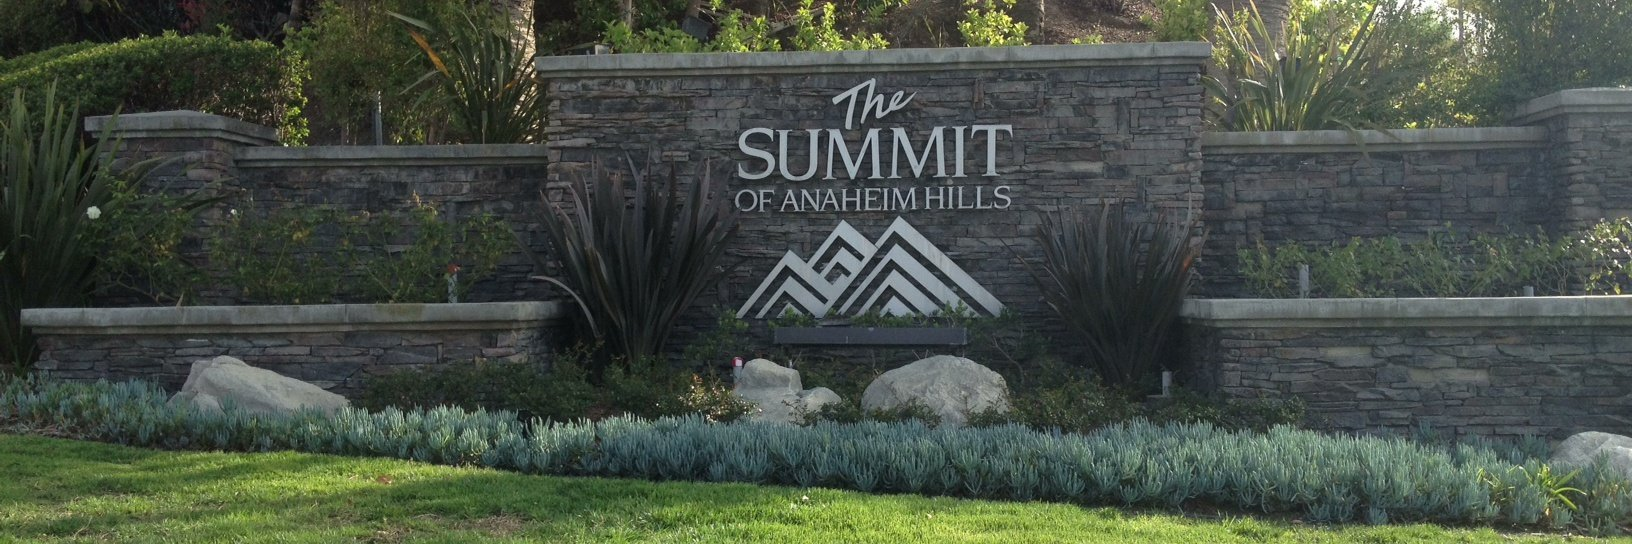 Summit Springs is a community located in Anaheim Hills CA